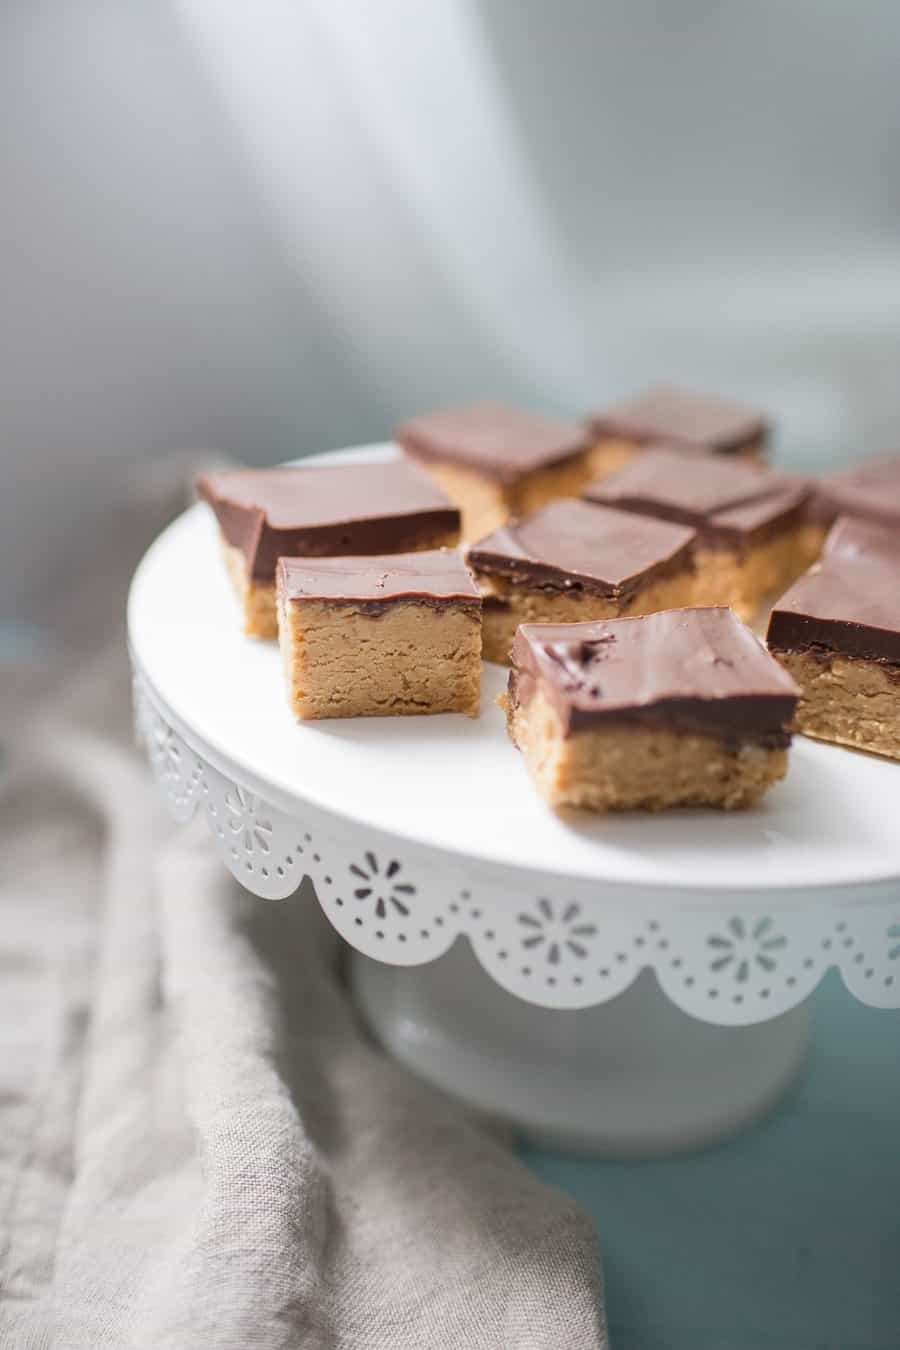 White cake stand with peanut butter and chocolate squares on top.